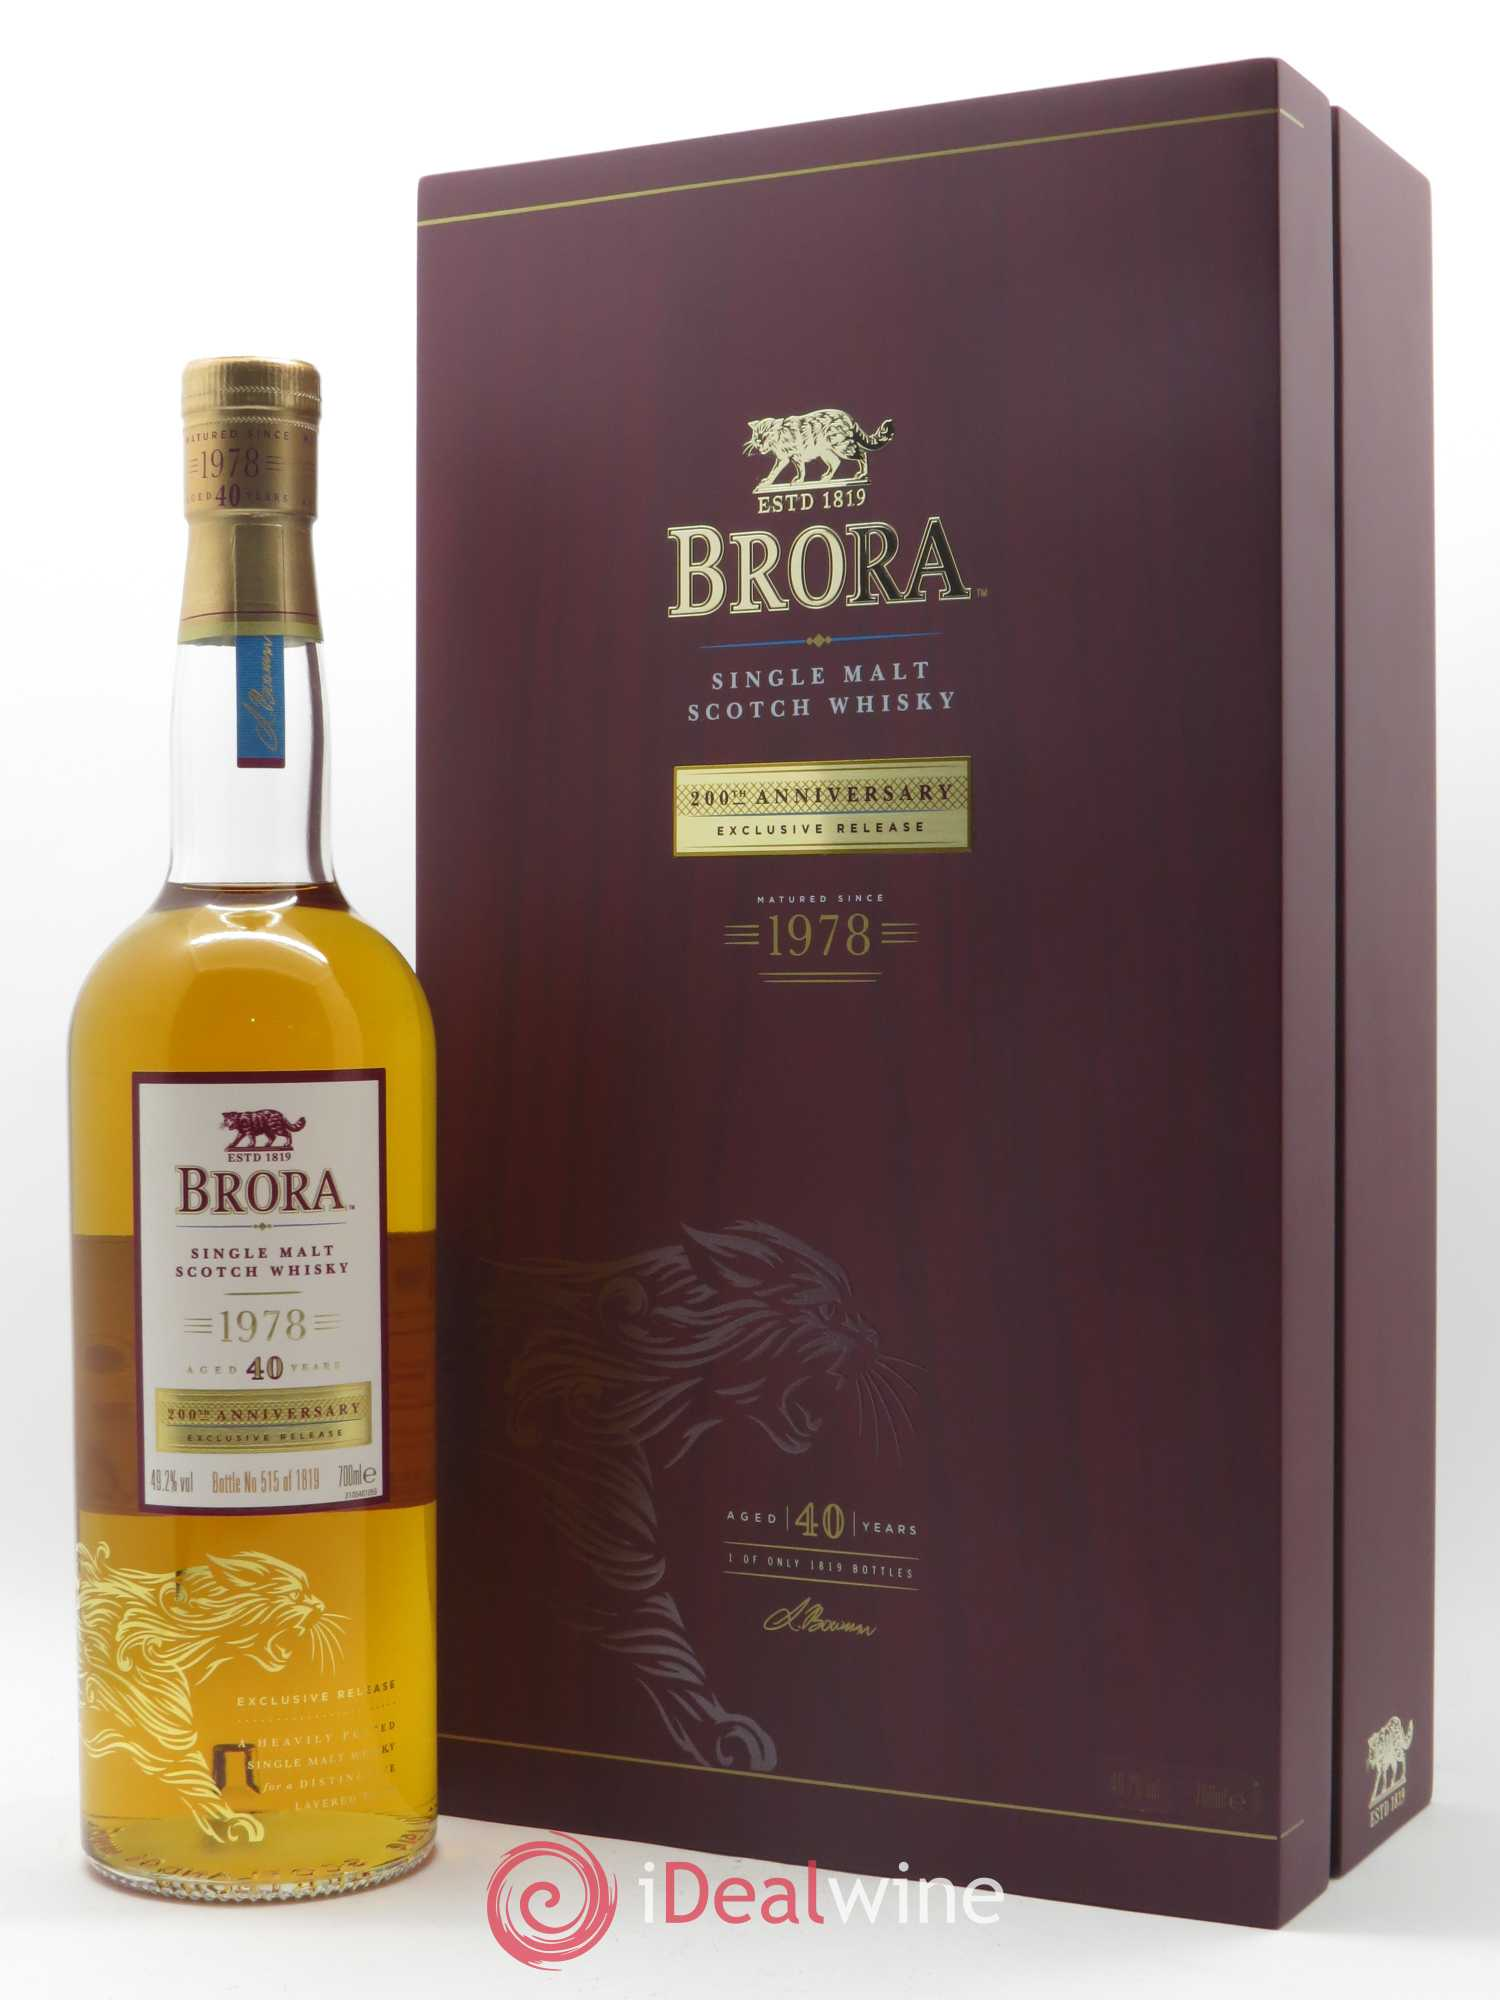 Whisky Brora Single Malt Scotch Aged 40 Years   - Lot de 1 Bouteille